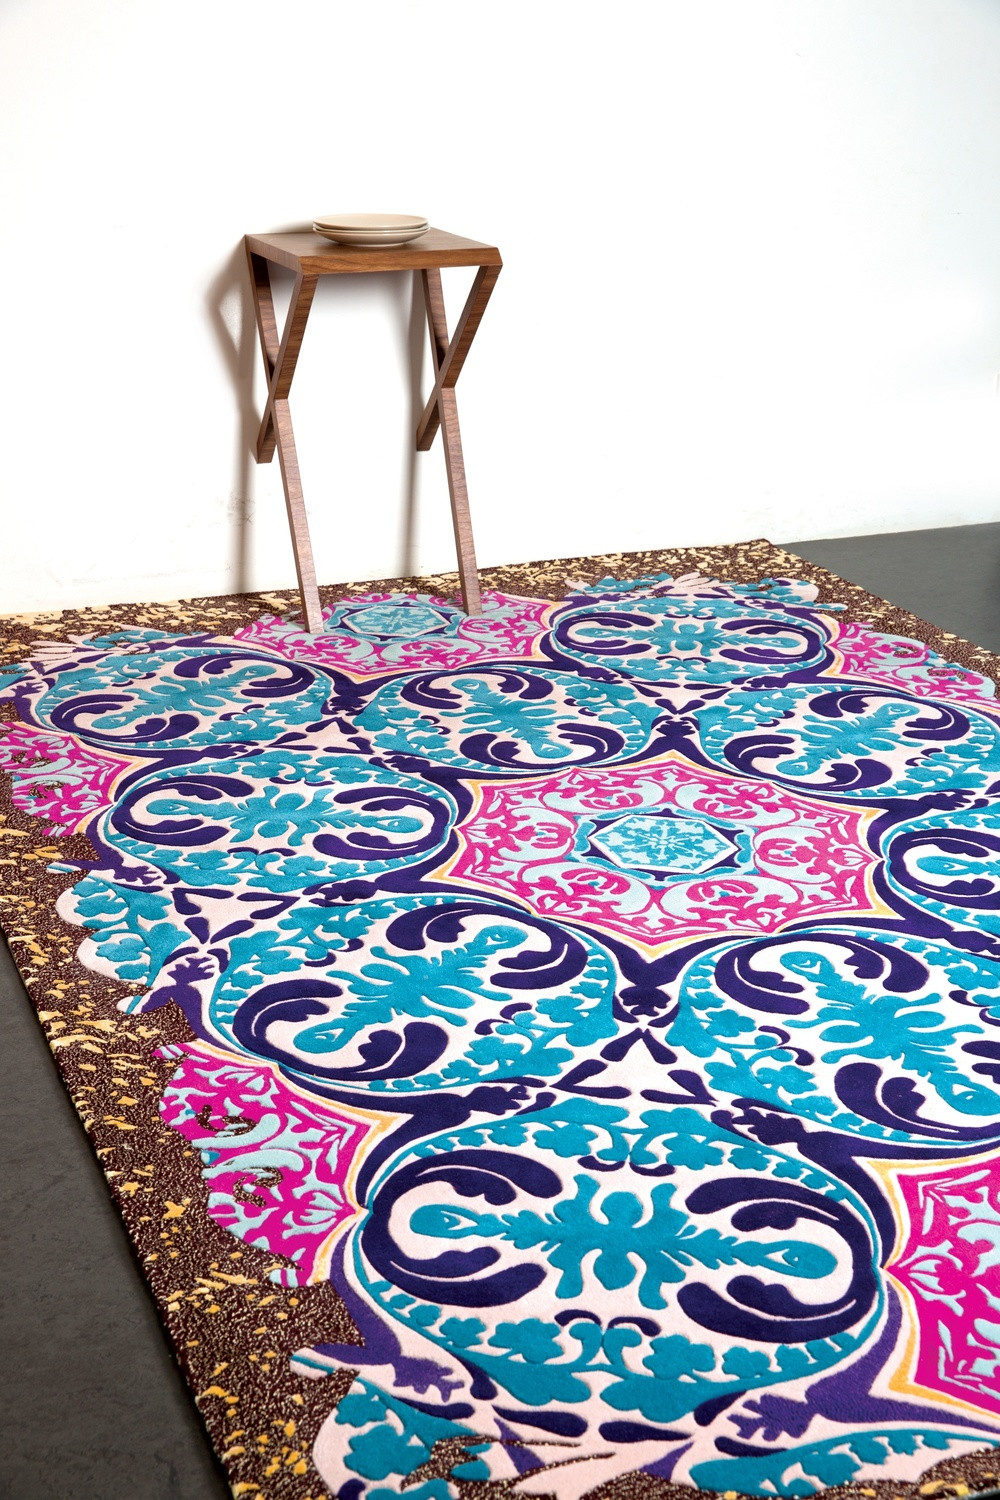 Maison et Objet 2018: Selection of the Best Rugs best rugs Maison et Objet 2018: Selection of the Best Rugs Maison et Objet Best Rugs 3